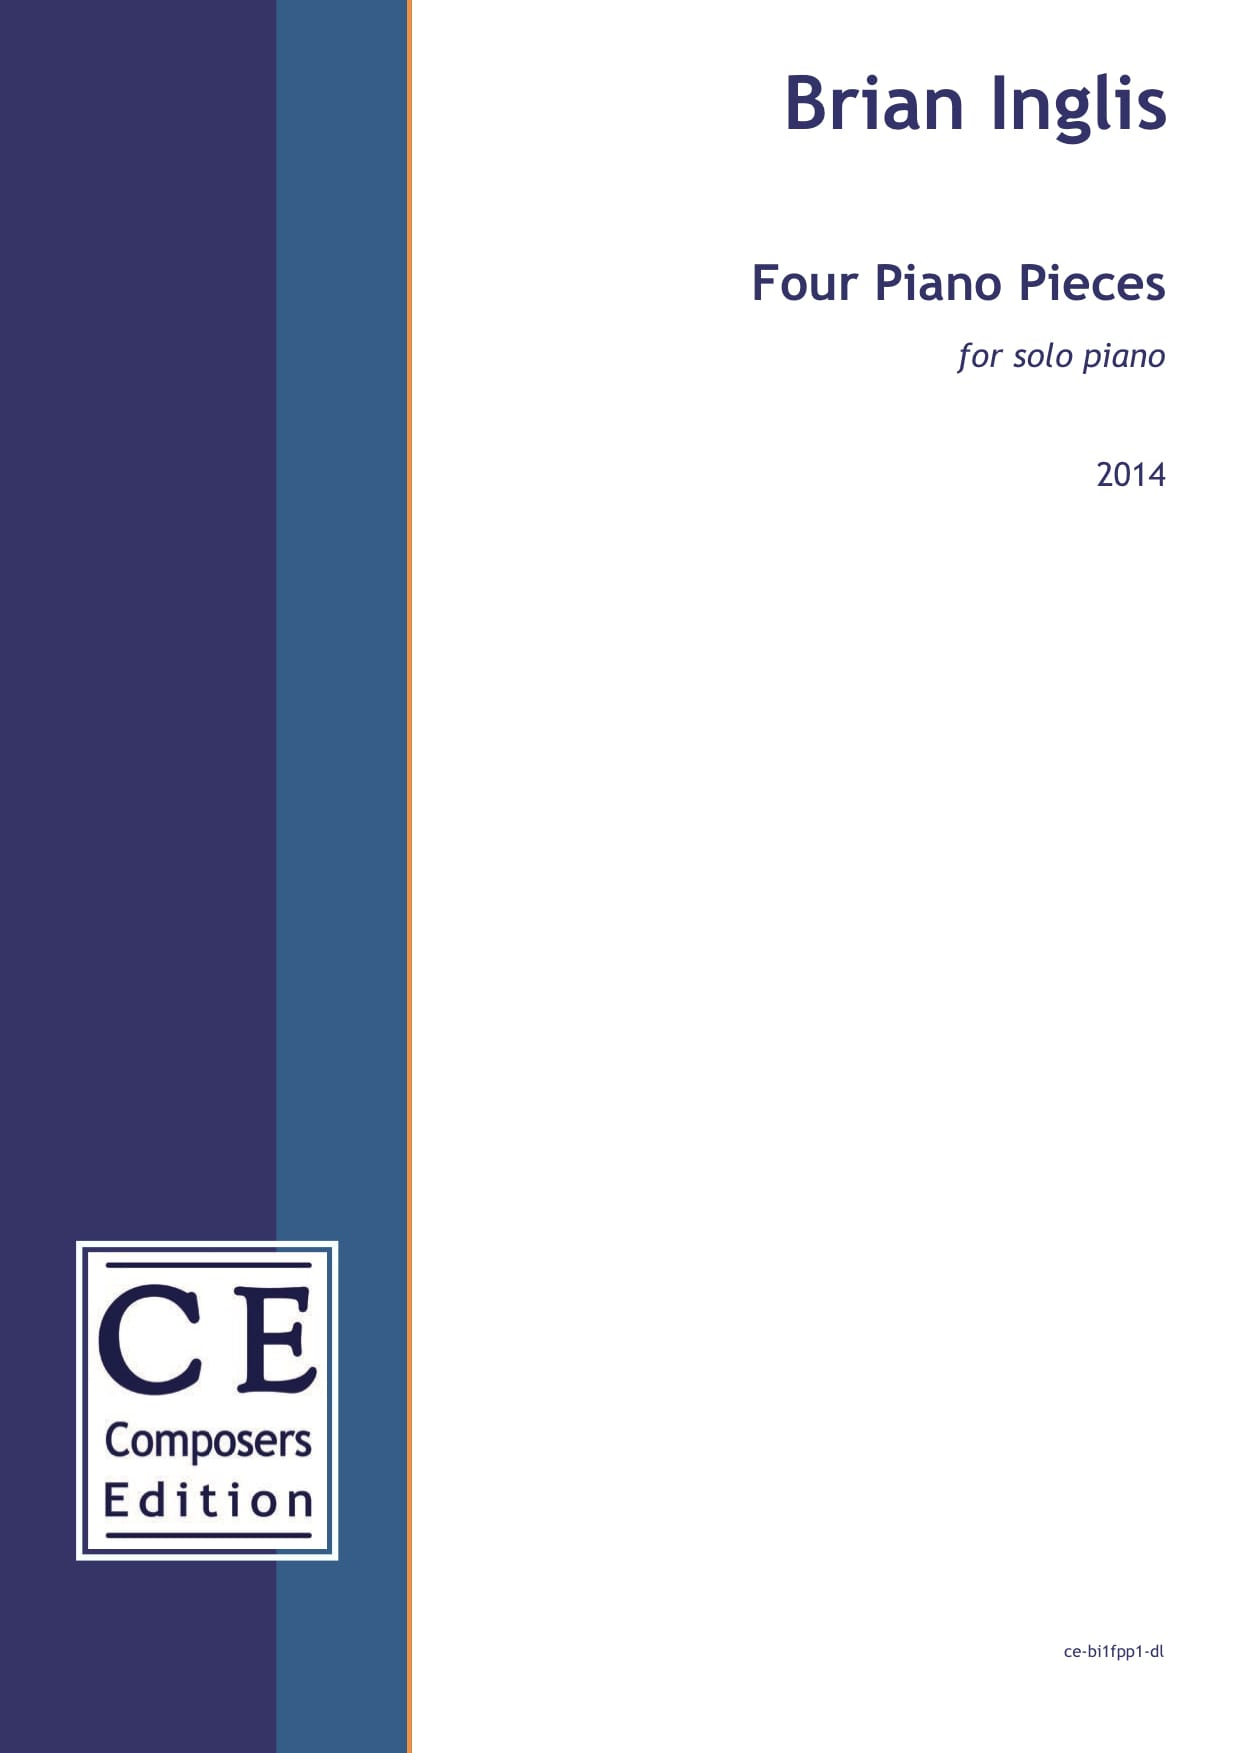 Brian Inglis: Four Piano Pieces for solo piano